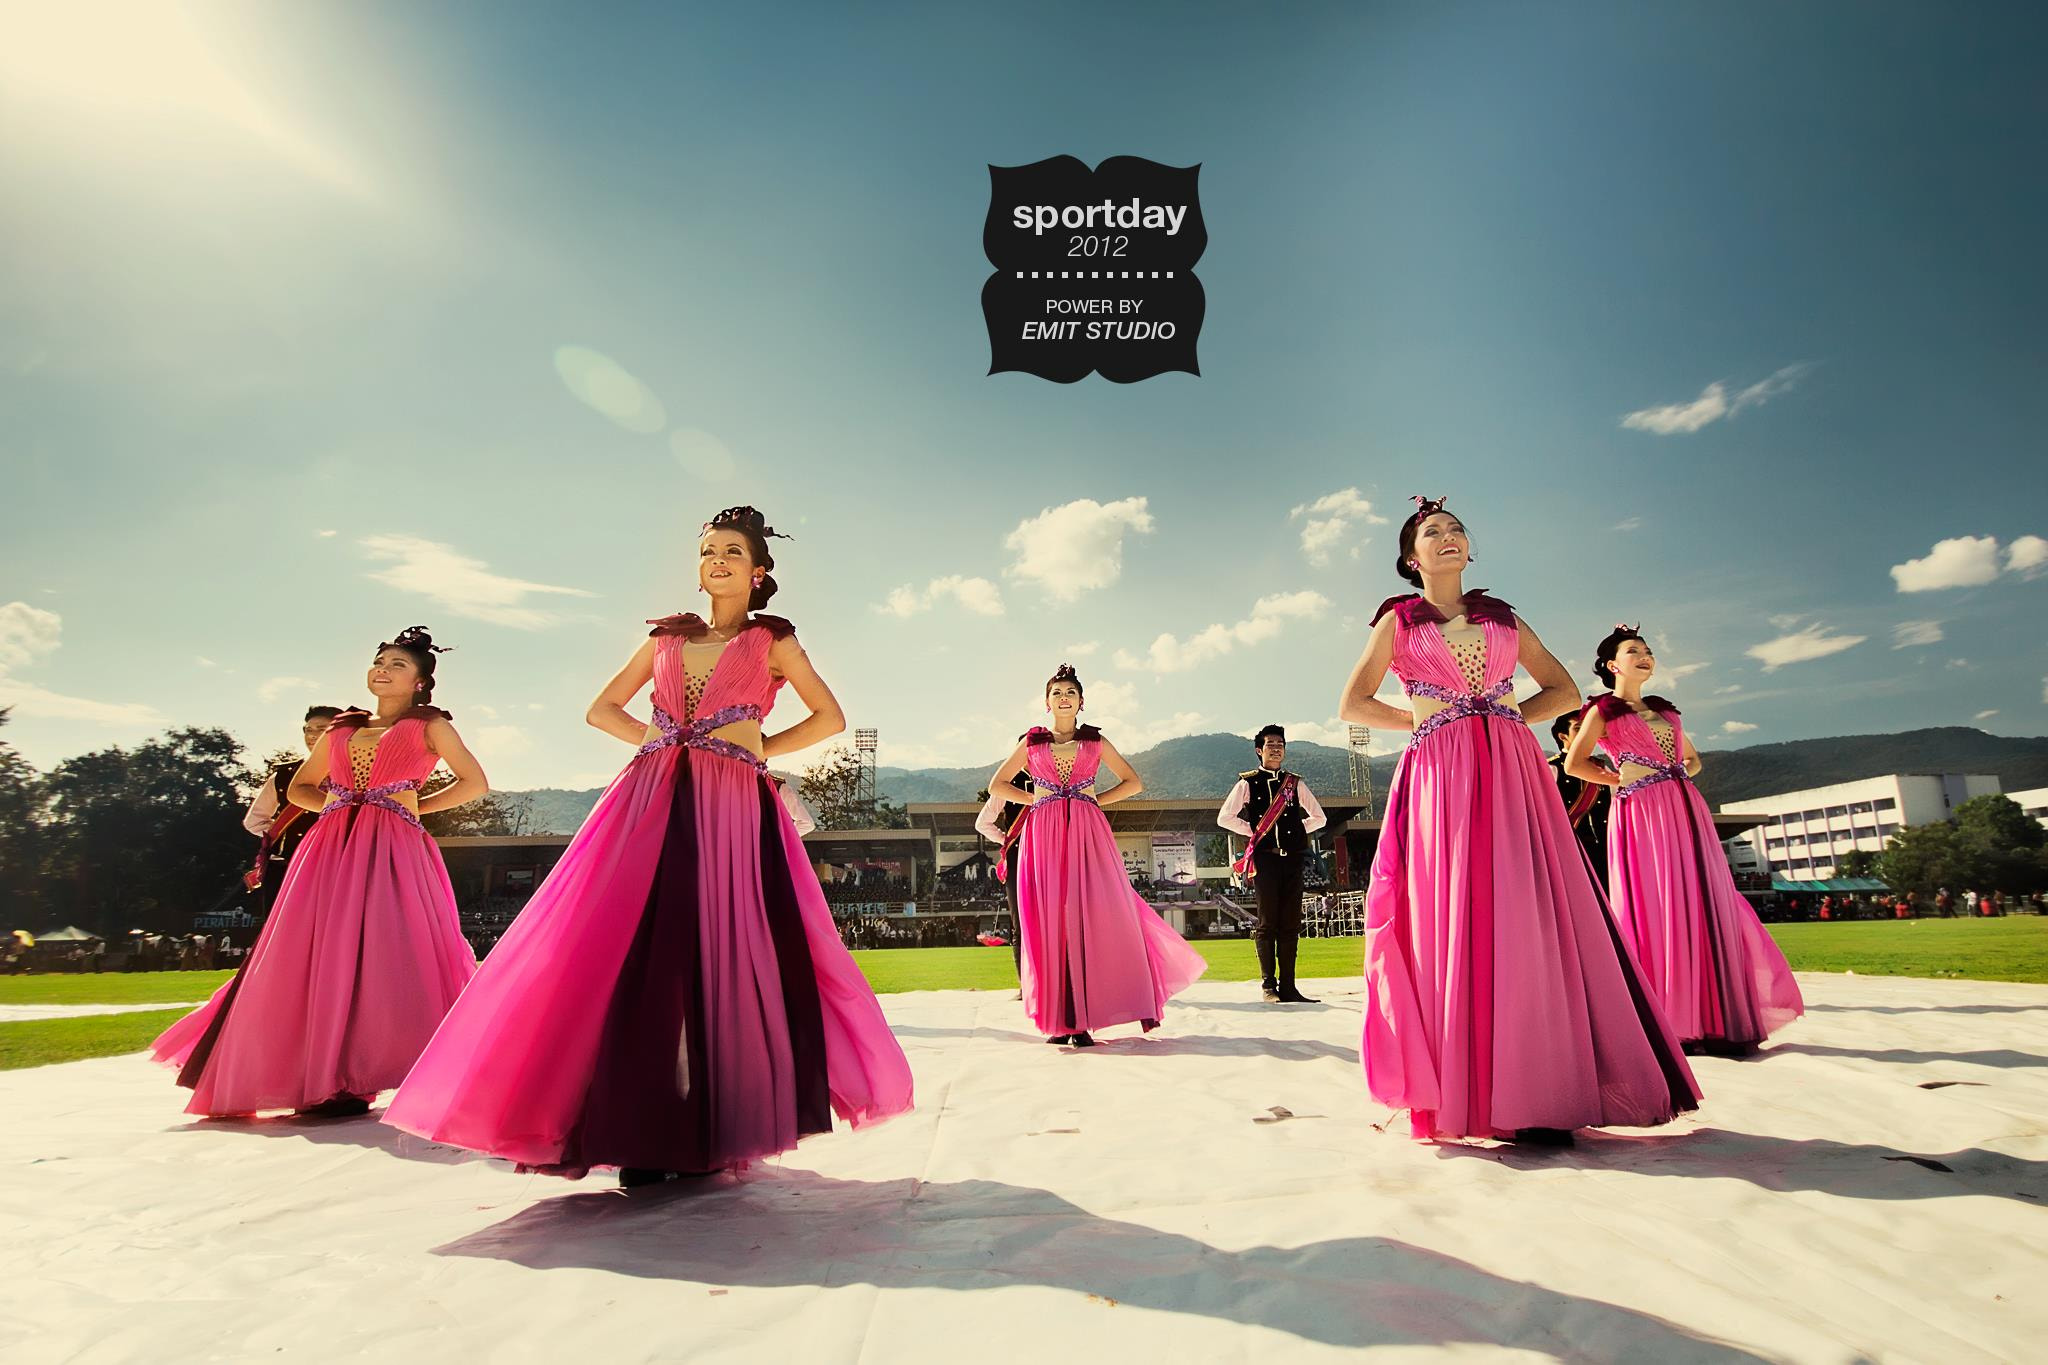 Photograph Sportday 2012 by Saiyawong Lookkaew on 500px